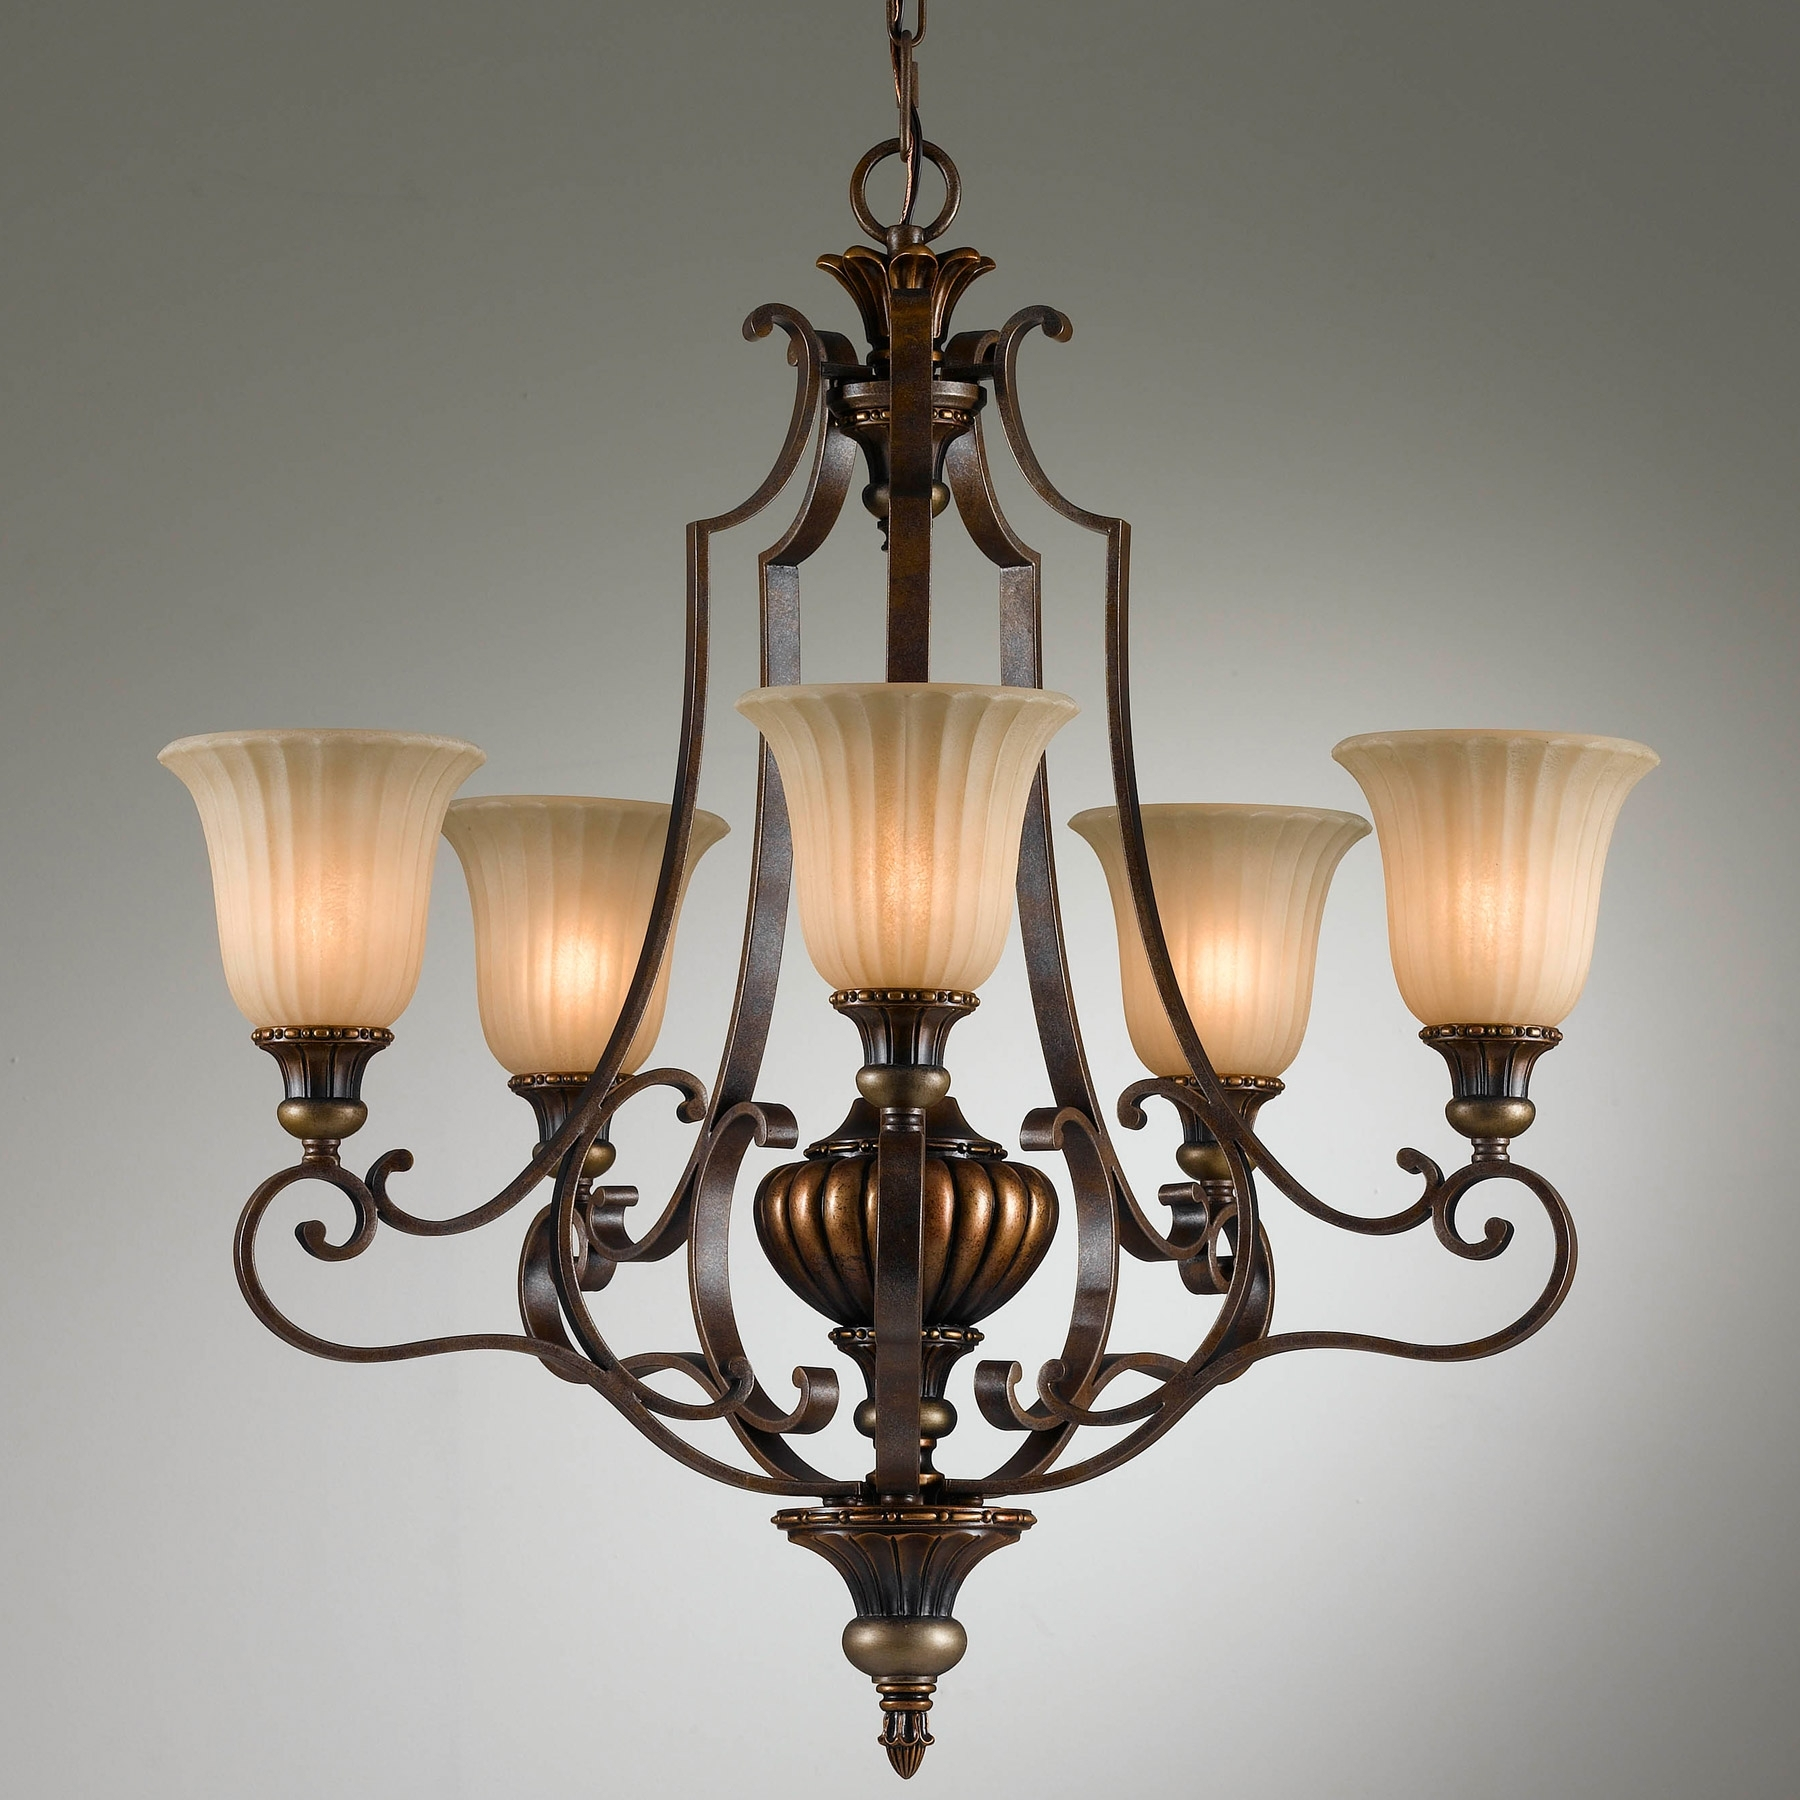 Feiss Chandeliers With Widely Used Chandelier: Outstanding Feiss Chandeliers Decorative Chandelier No (View 9 of 20)